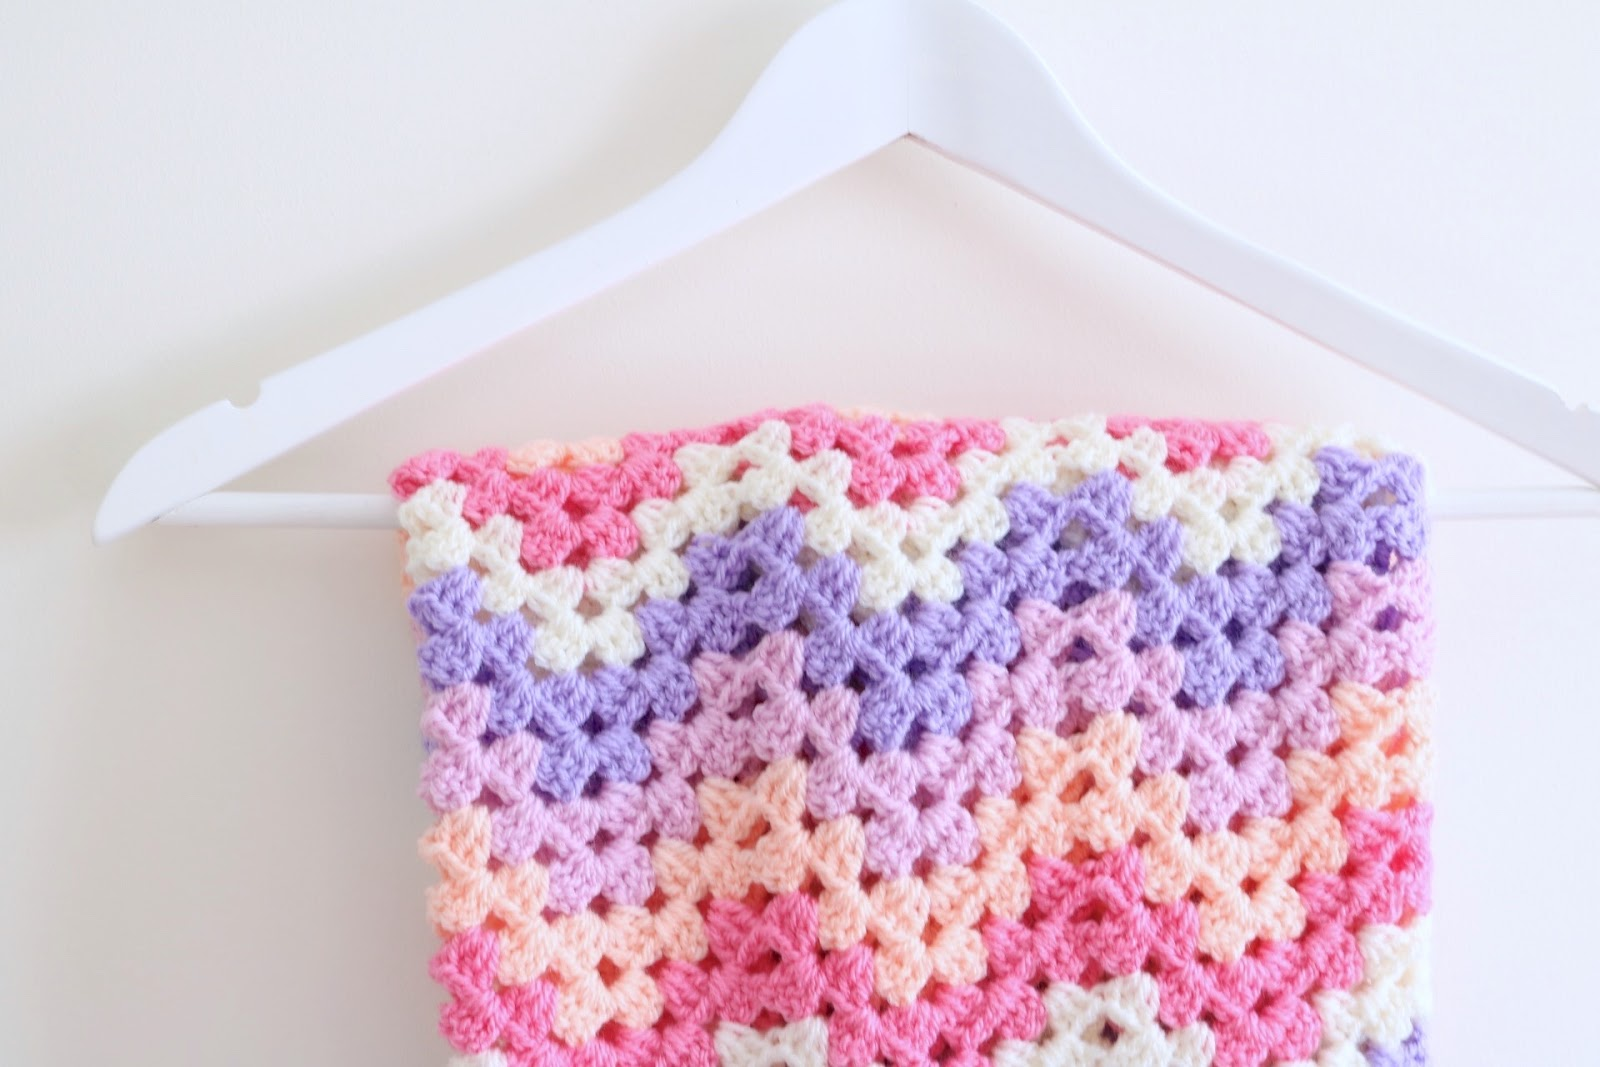 Crochet Granny Chevron blanket tutorial - Bella Coco by Sarah-Jayne